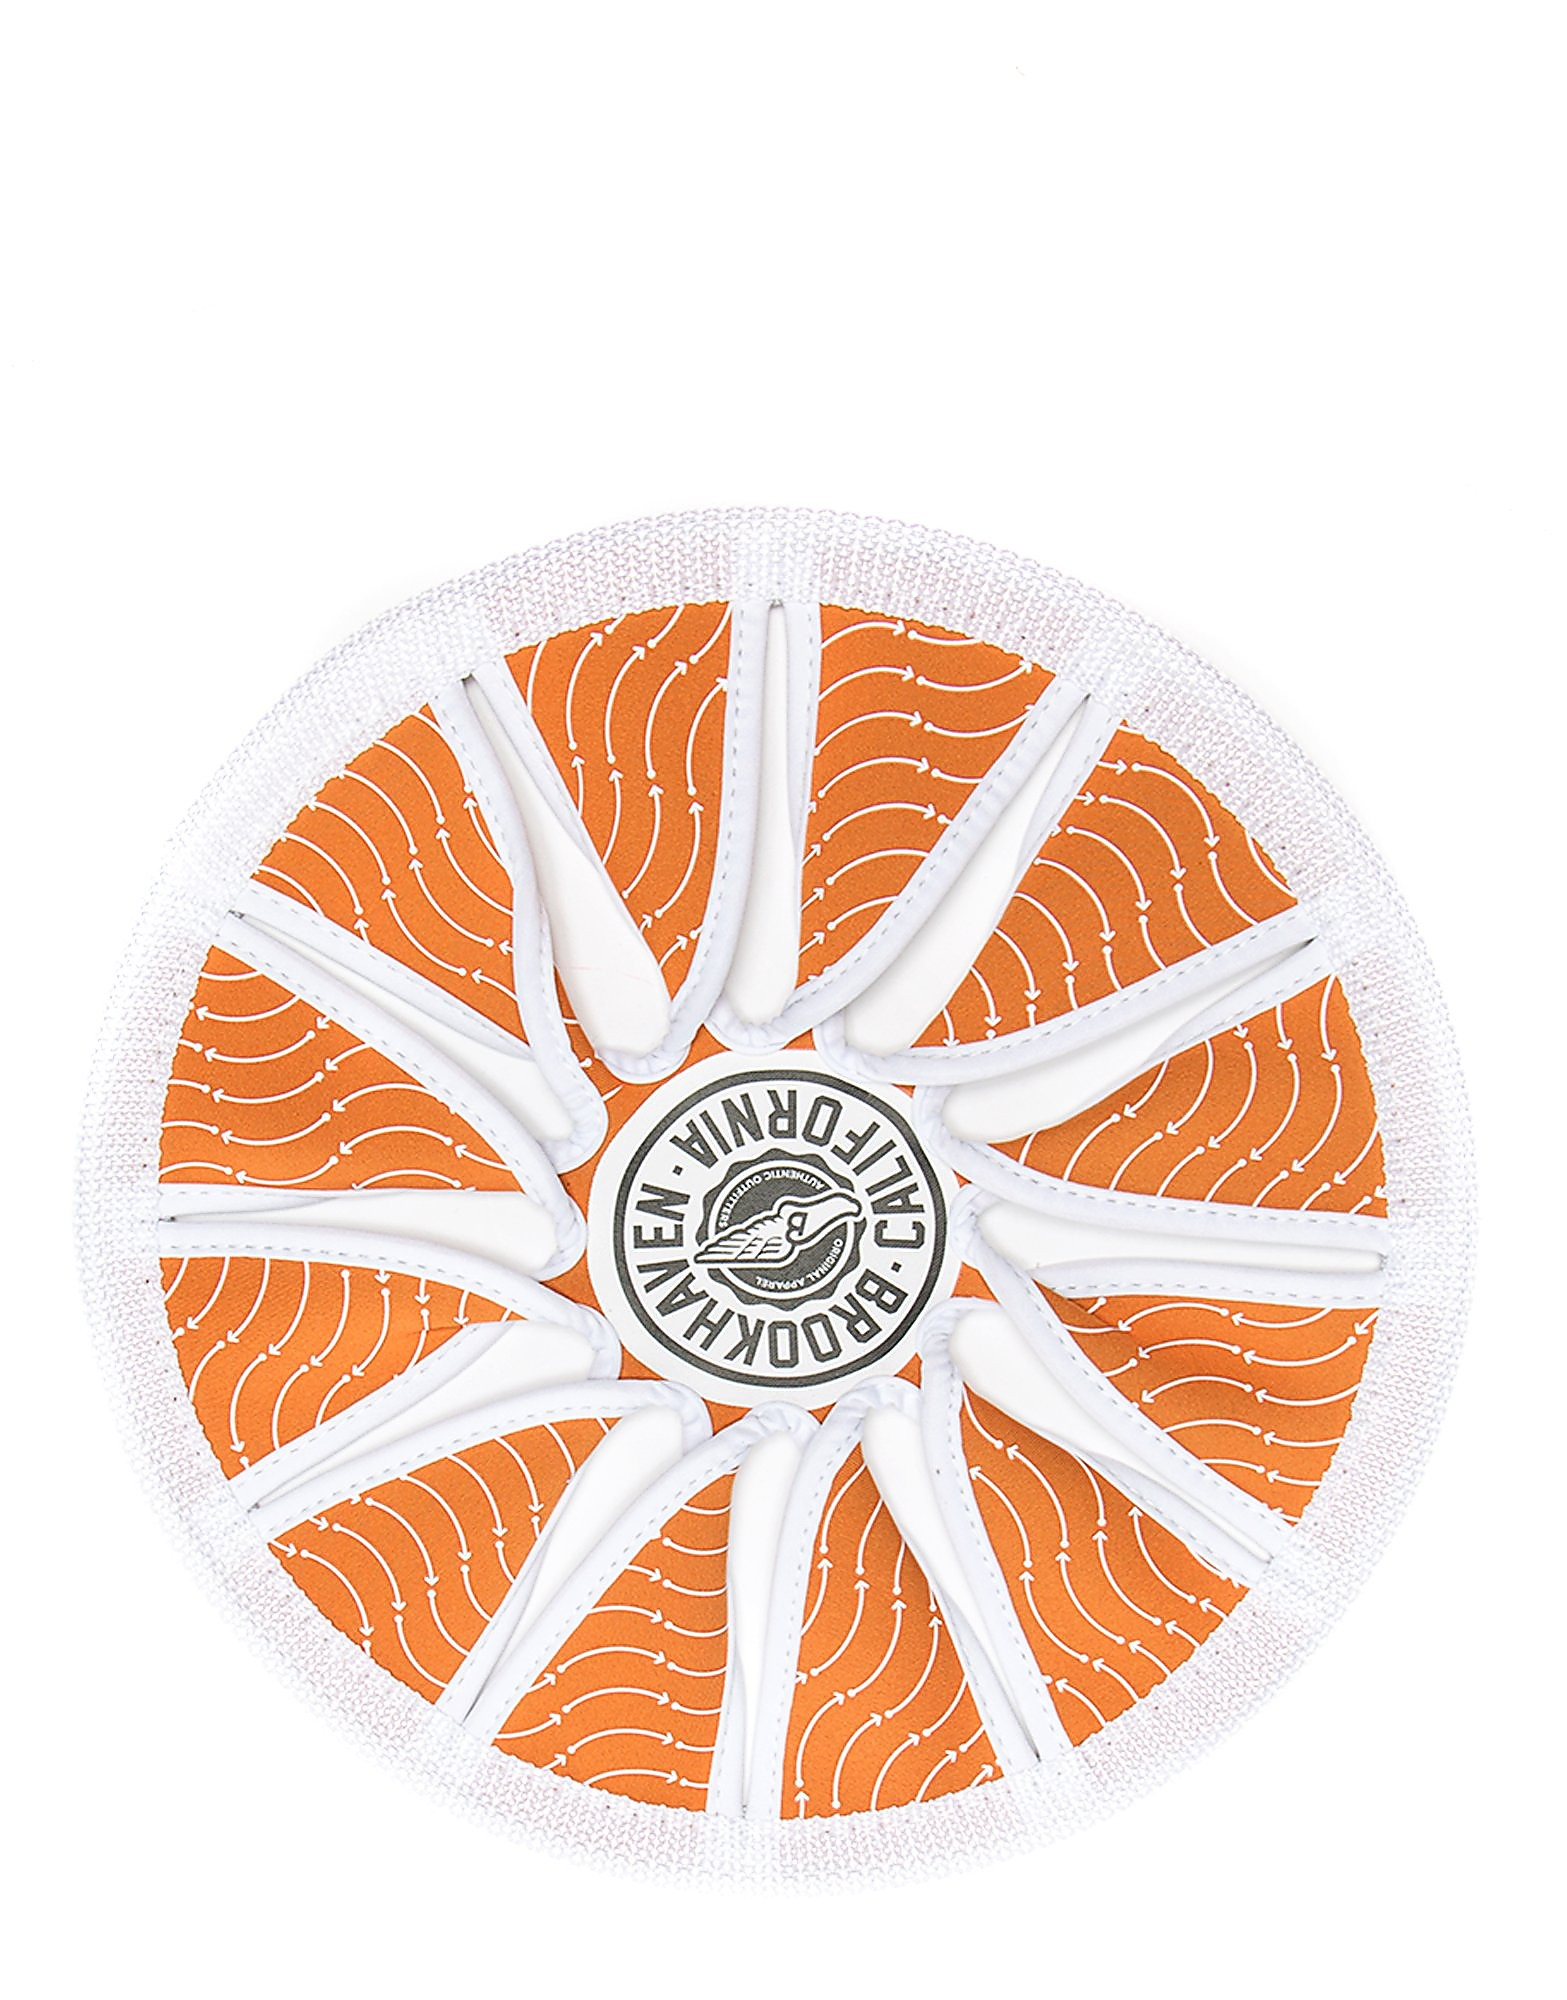 Brookhaven Beach Fly Disc